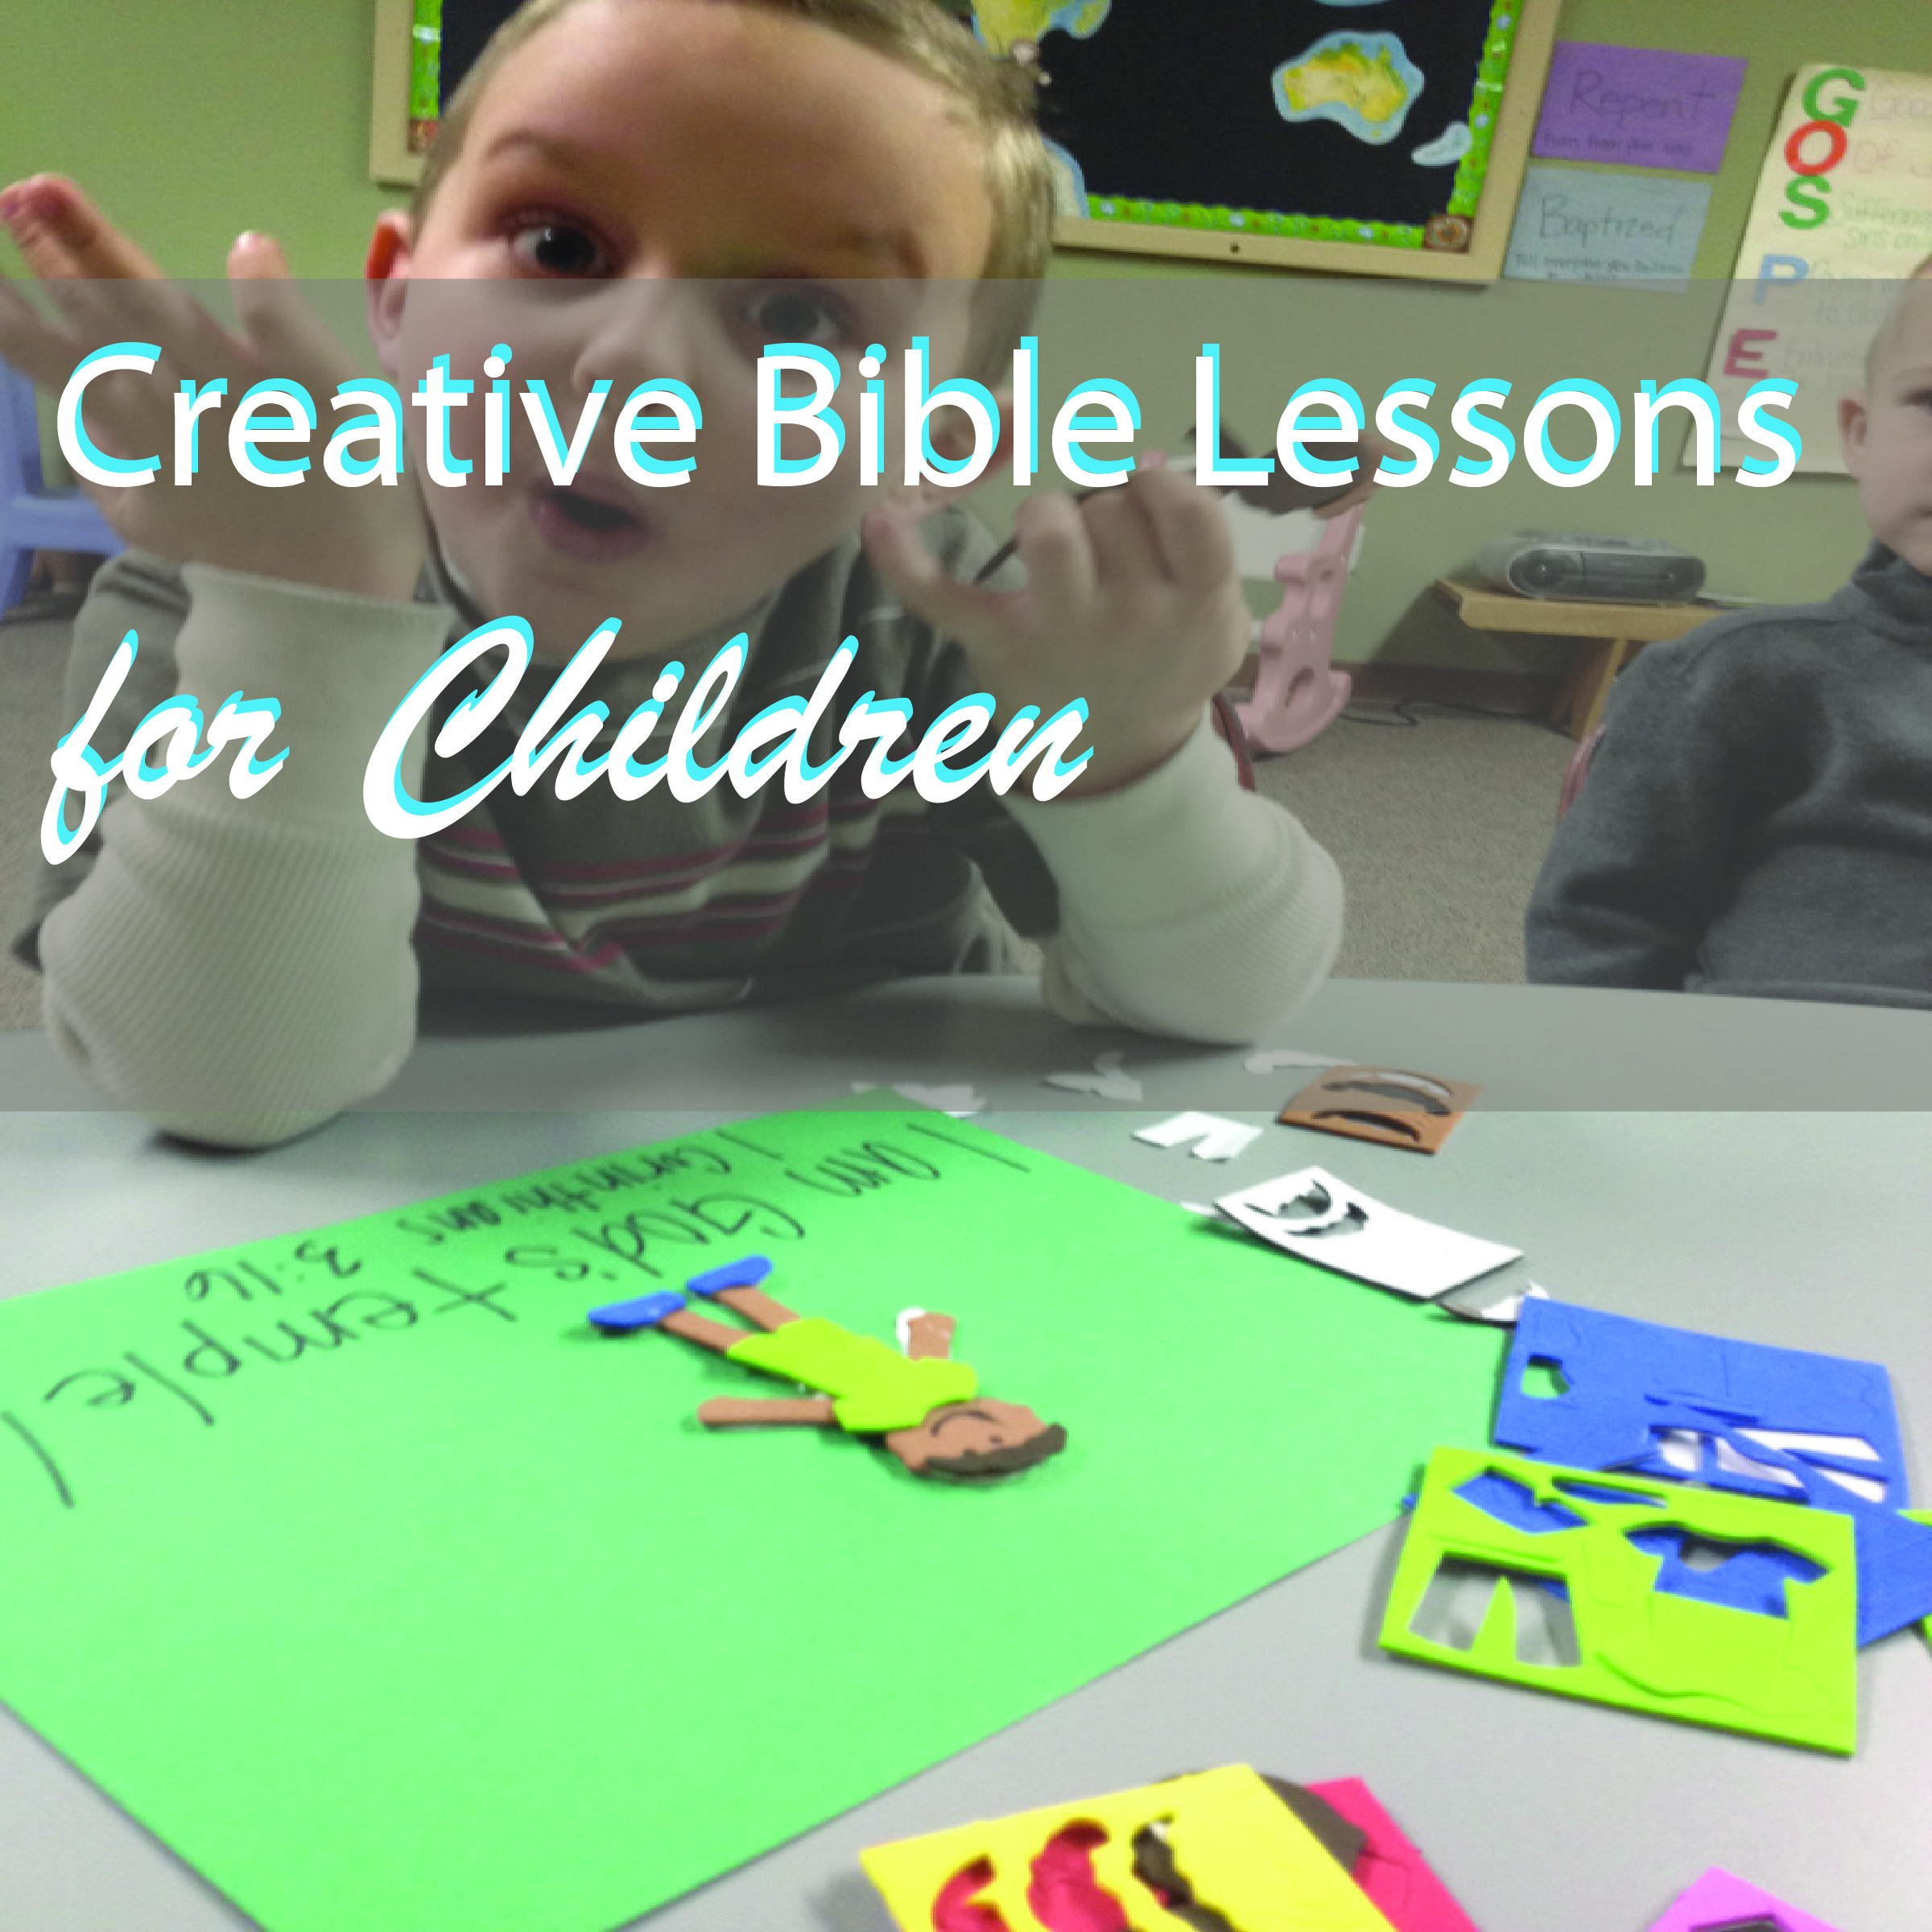 Creative Bible Lessons for kids.jpg